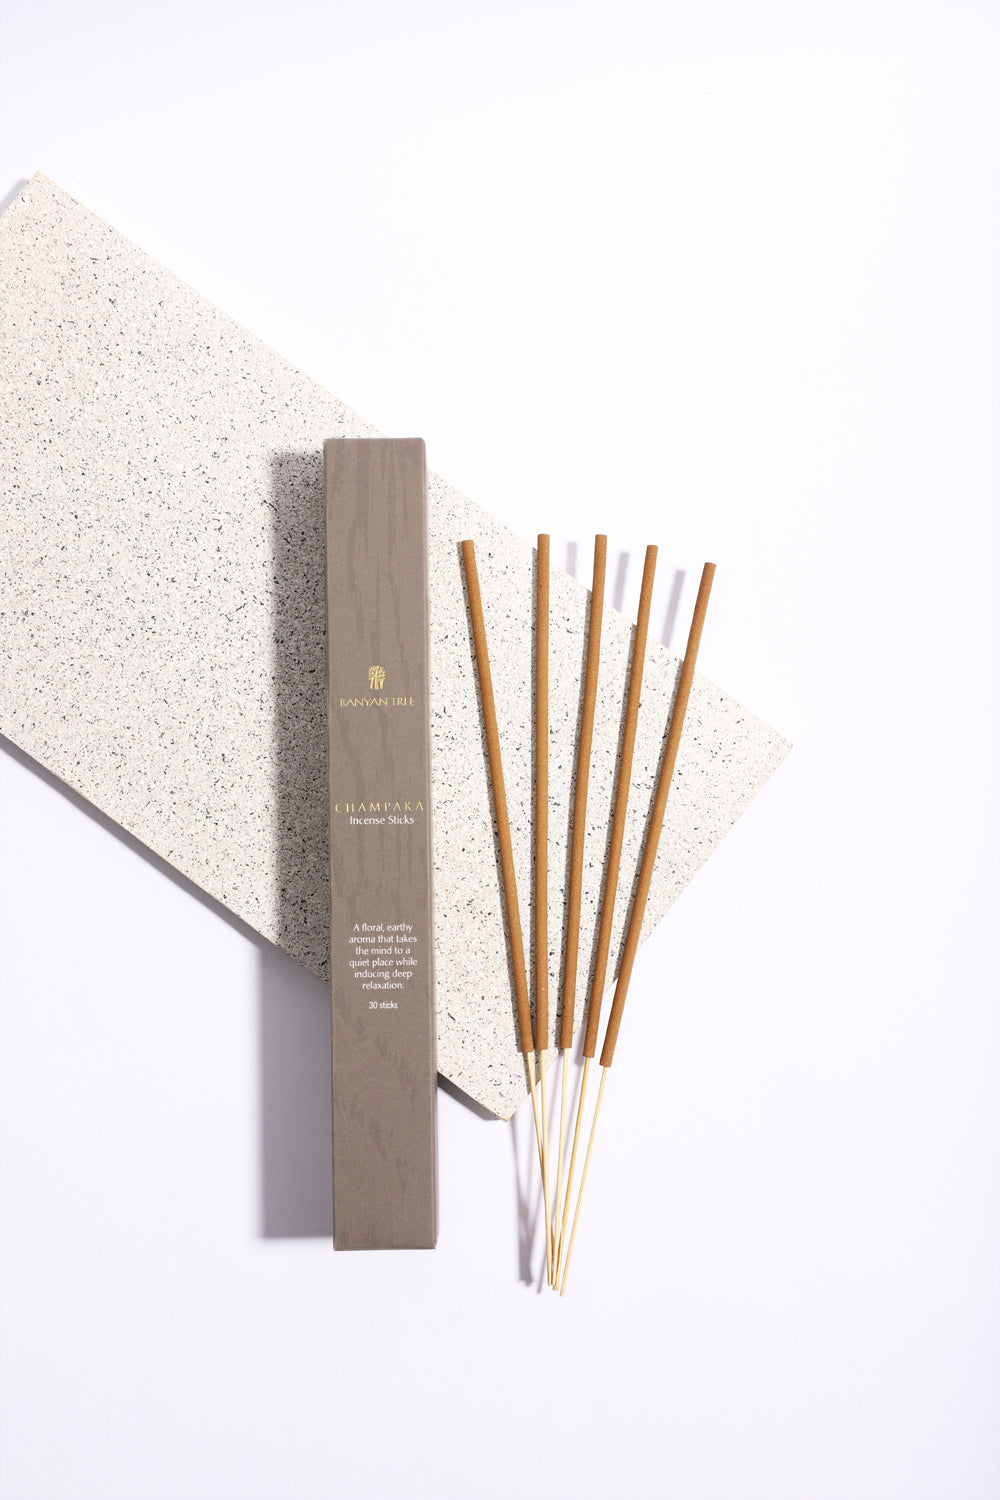 Champaka Aromatic Incense Sticks